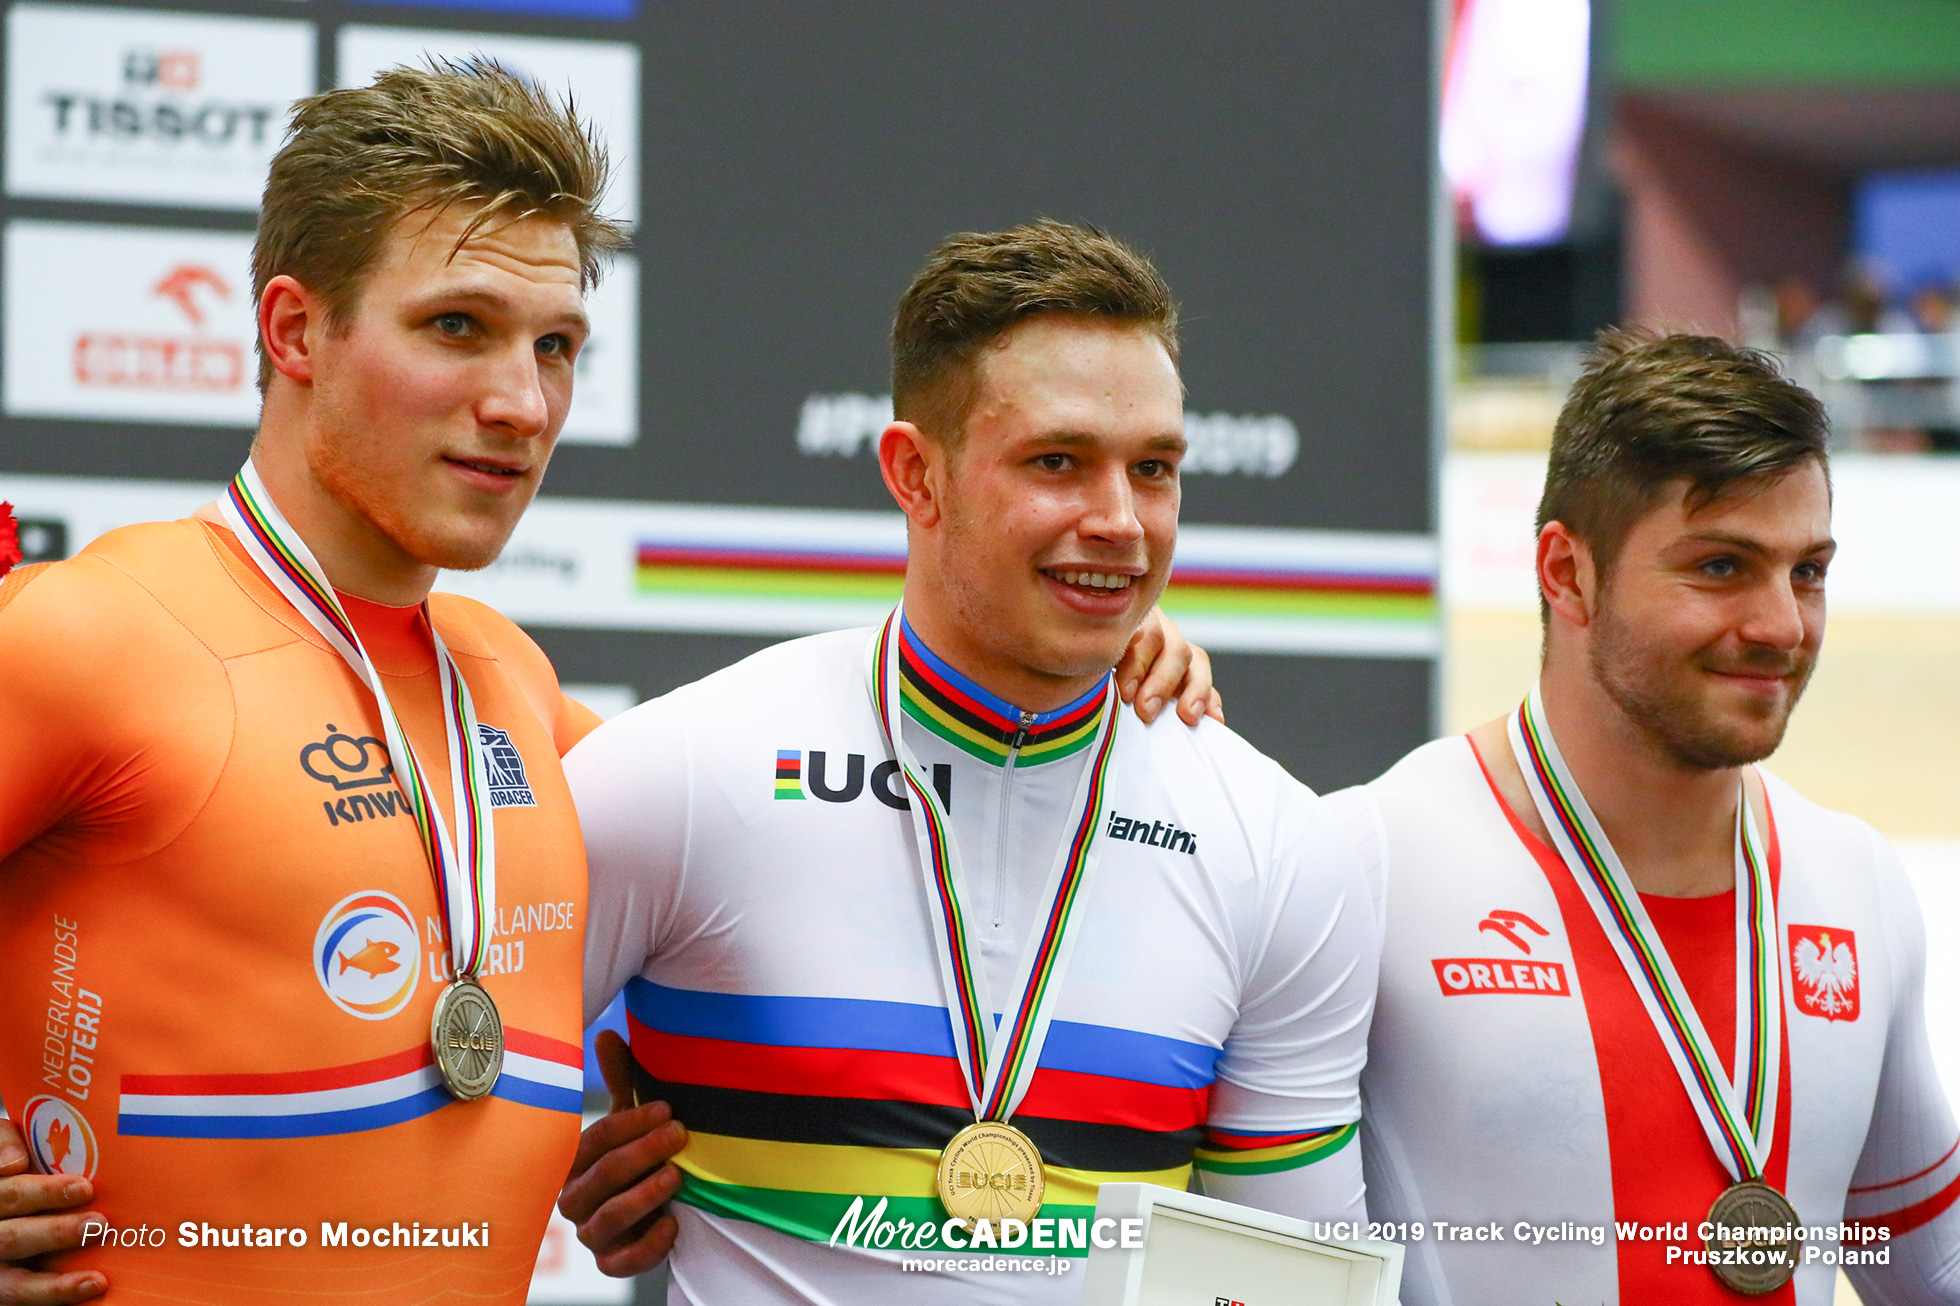 Men's Sprint Final / 2019 Track Cycling World Championships Pruszków, Poland